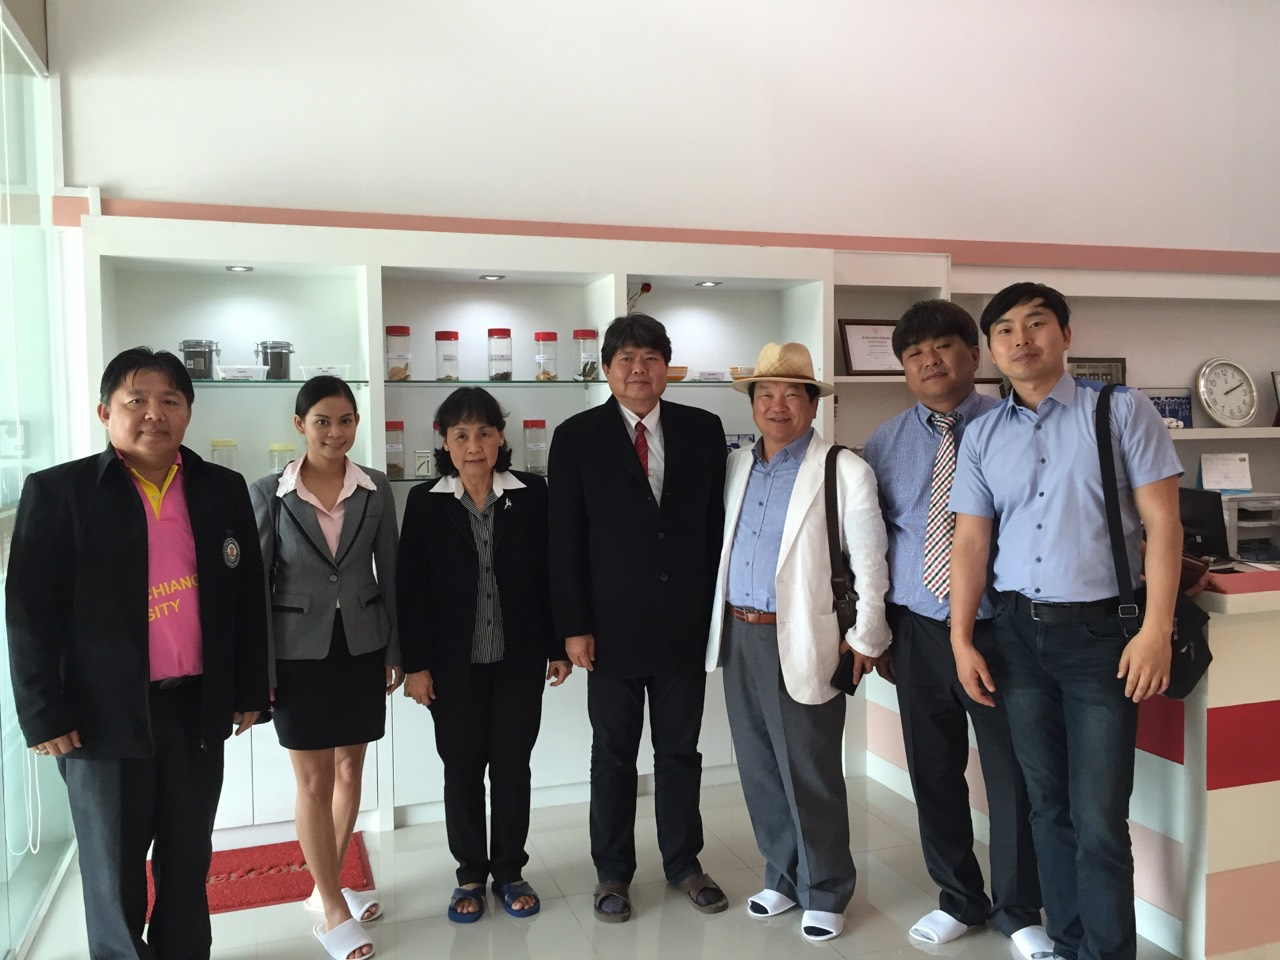 Staffs from Department of Cosmetic Technology, North-Chiang Mai University in Chiang Mai, Thailand together with professors from Seowon University, Republic of Korea visited Manose Health and Beauty Research Center